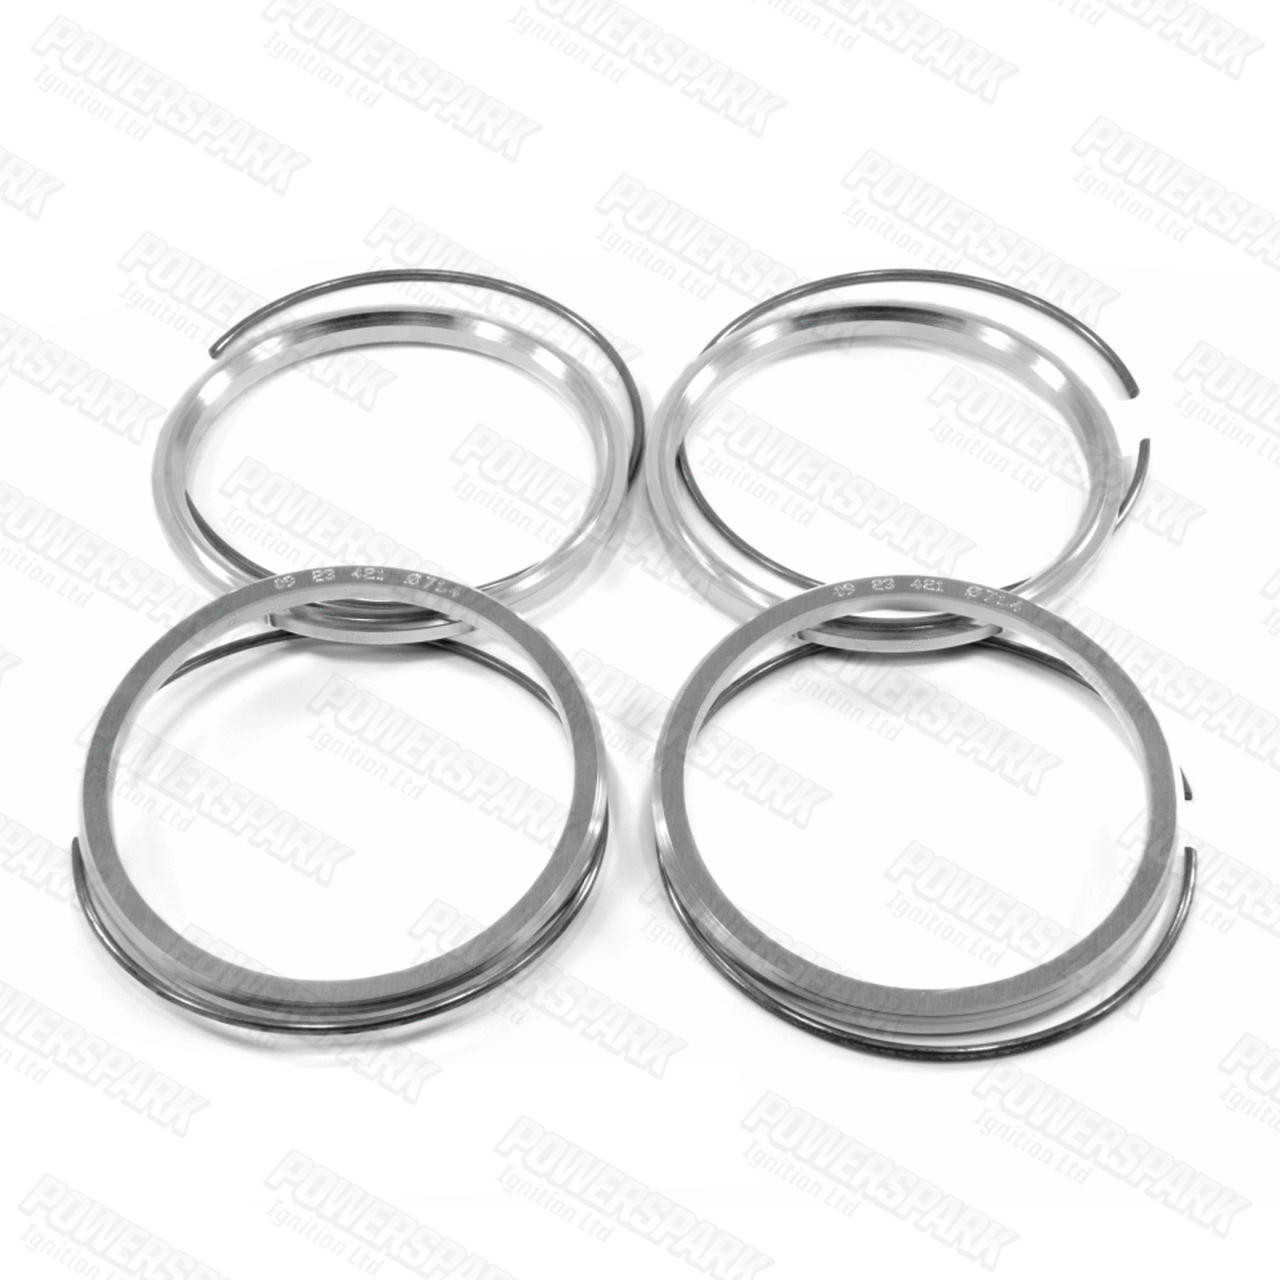 Bulldog 4 x Bulldog Spigot Rings to allow fitment of Discovery 3, 4, Range Rover Sport and L322 wheels to P38